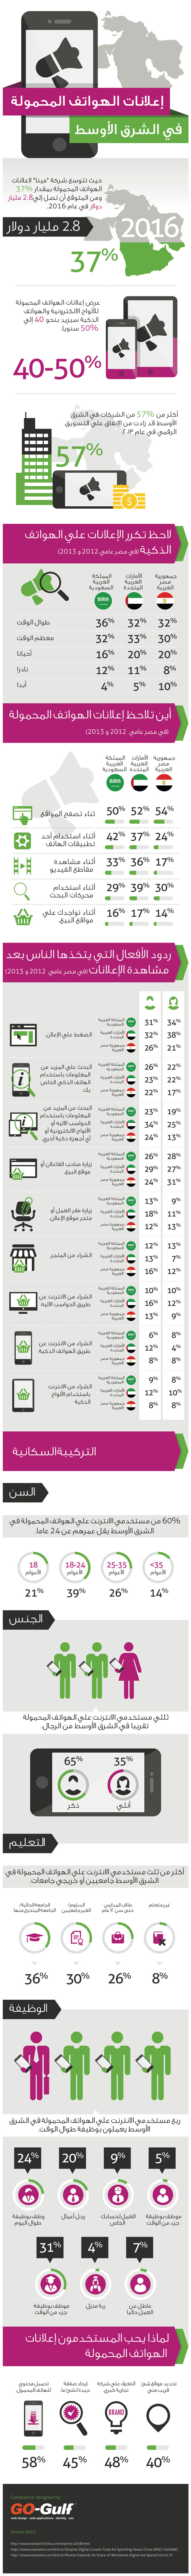 mobile-advertising-middle-east-arabic